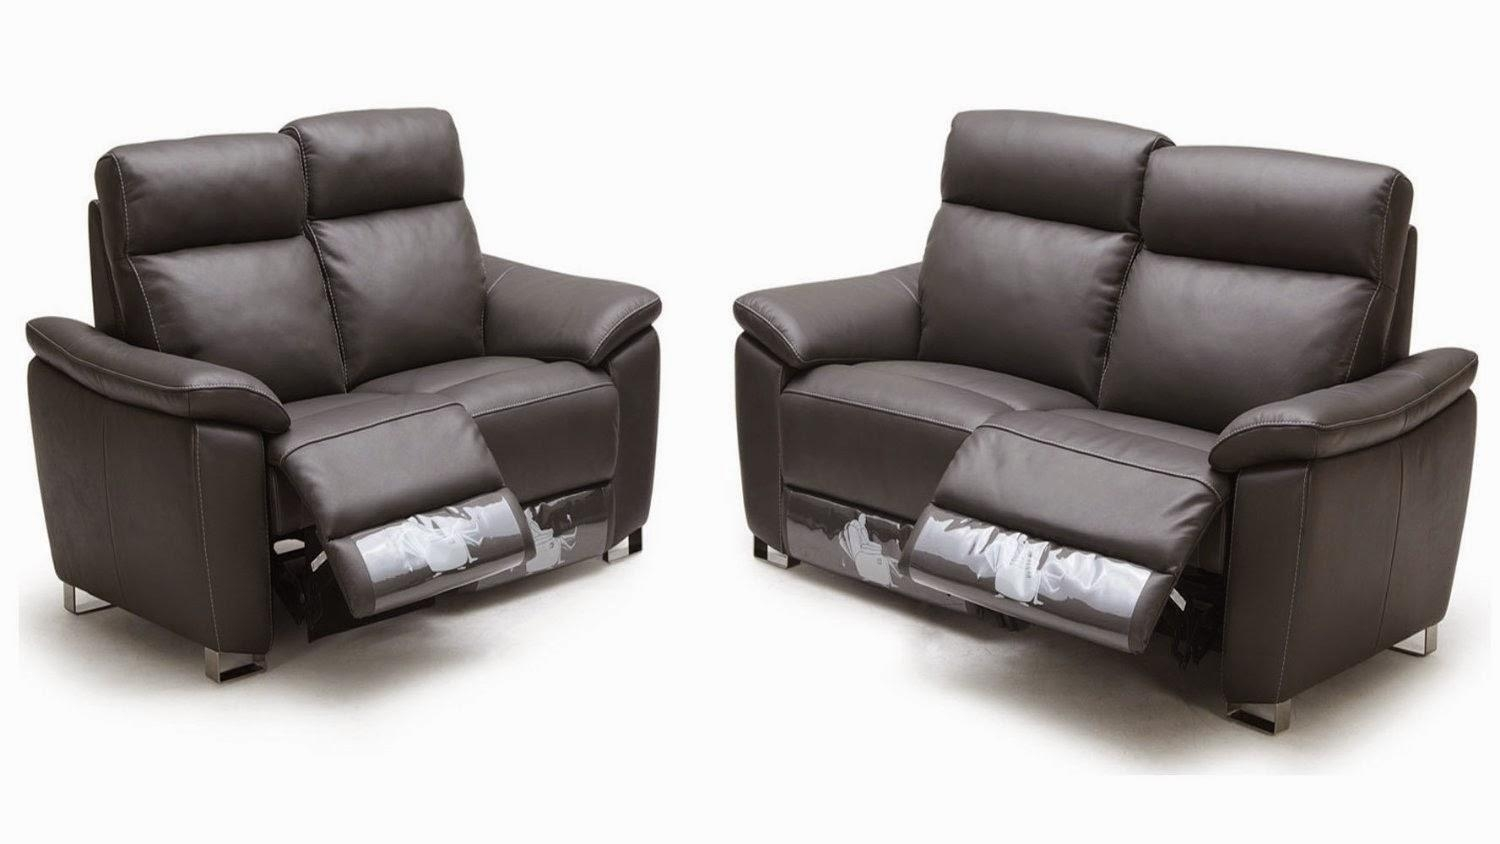 Featured Image of 2 Seater Recliner Leather Sofas